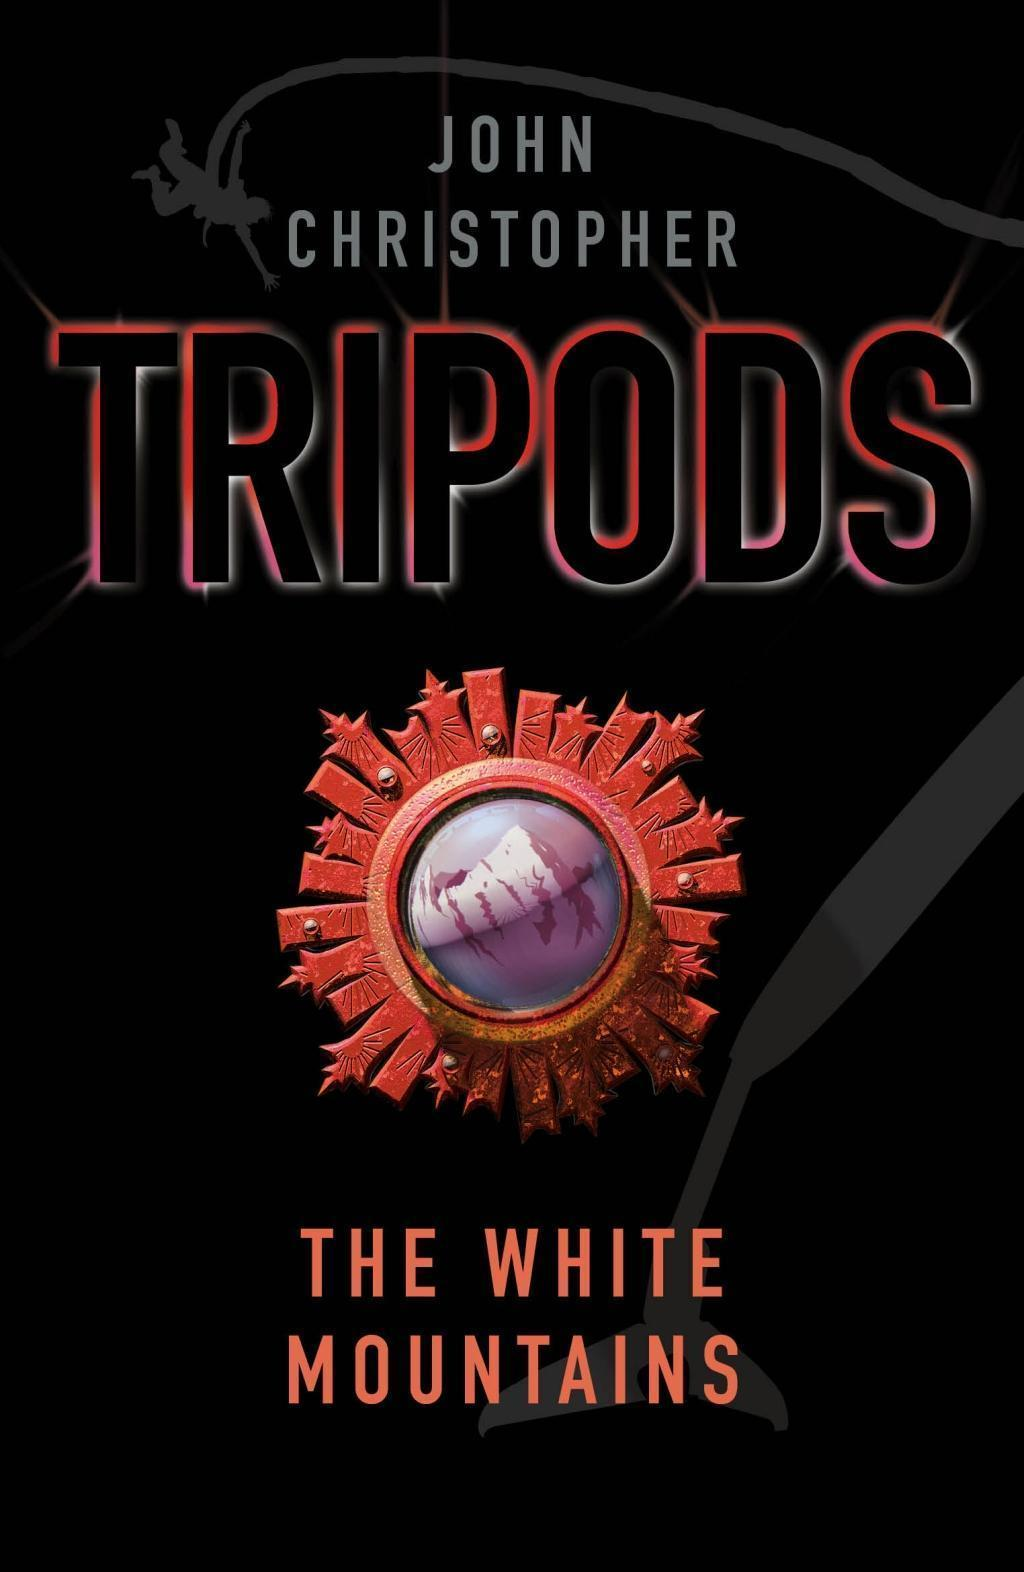 Tripods: The White Mountains